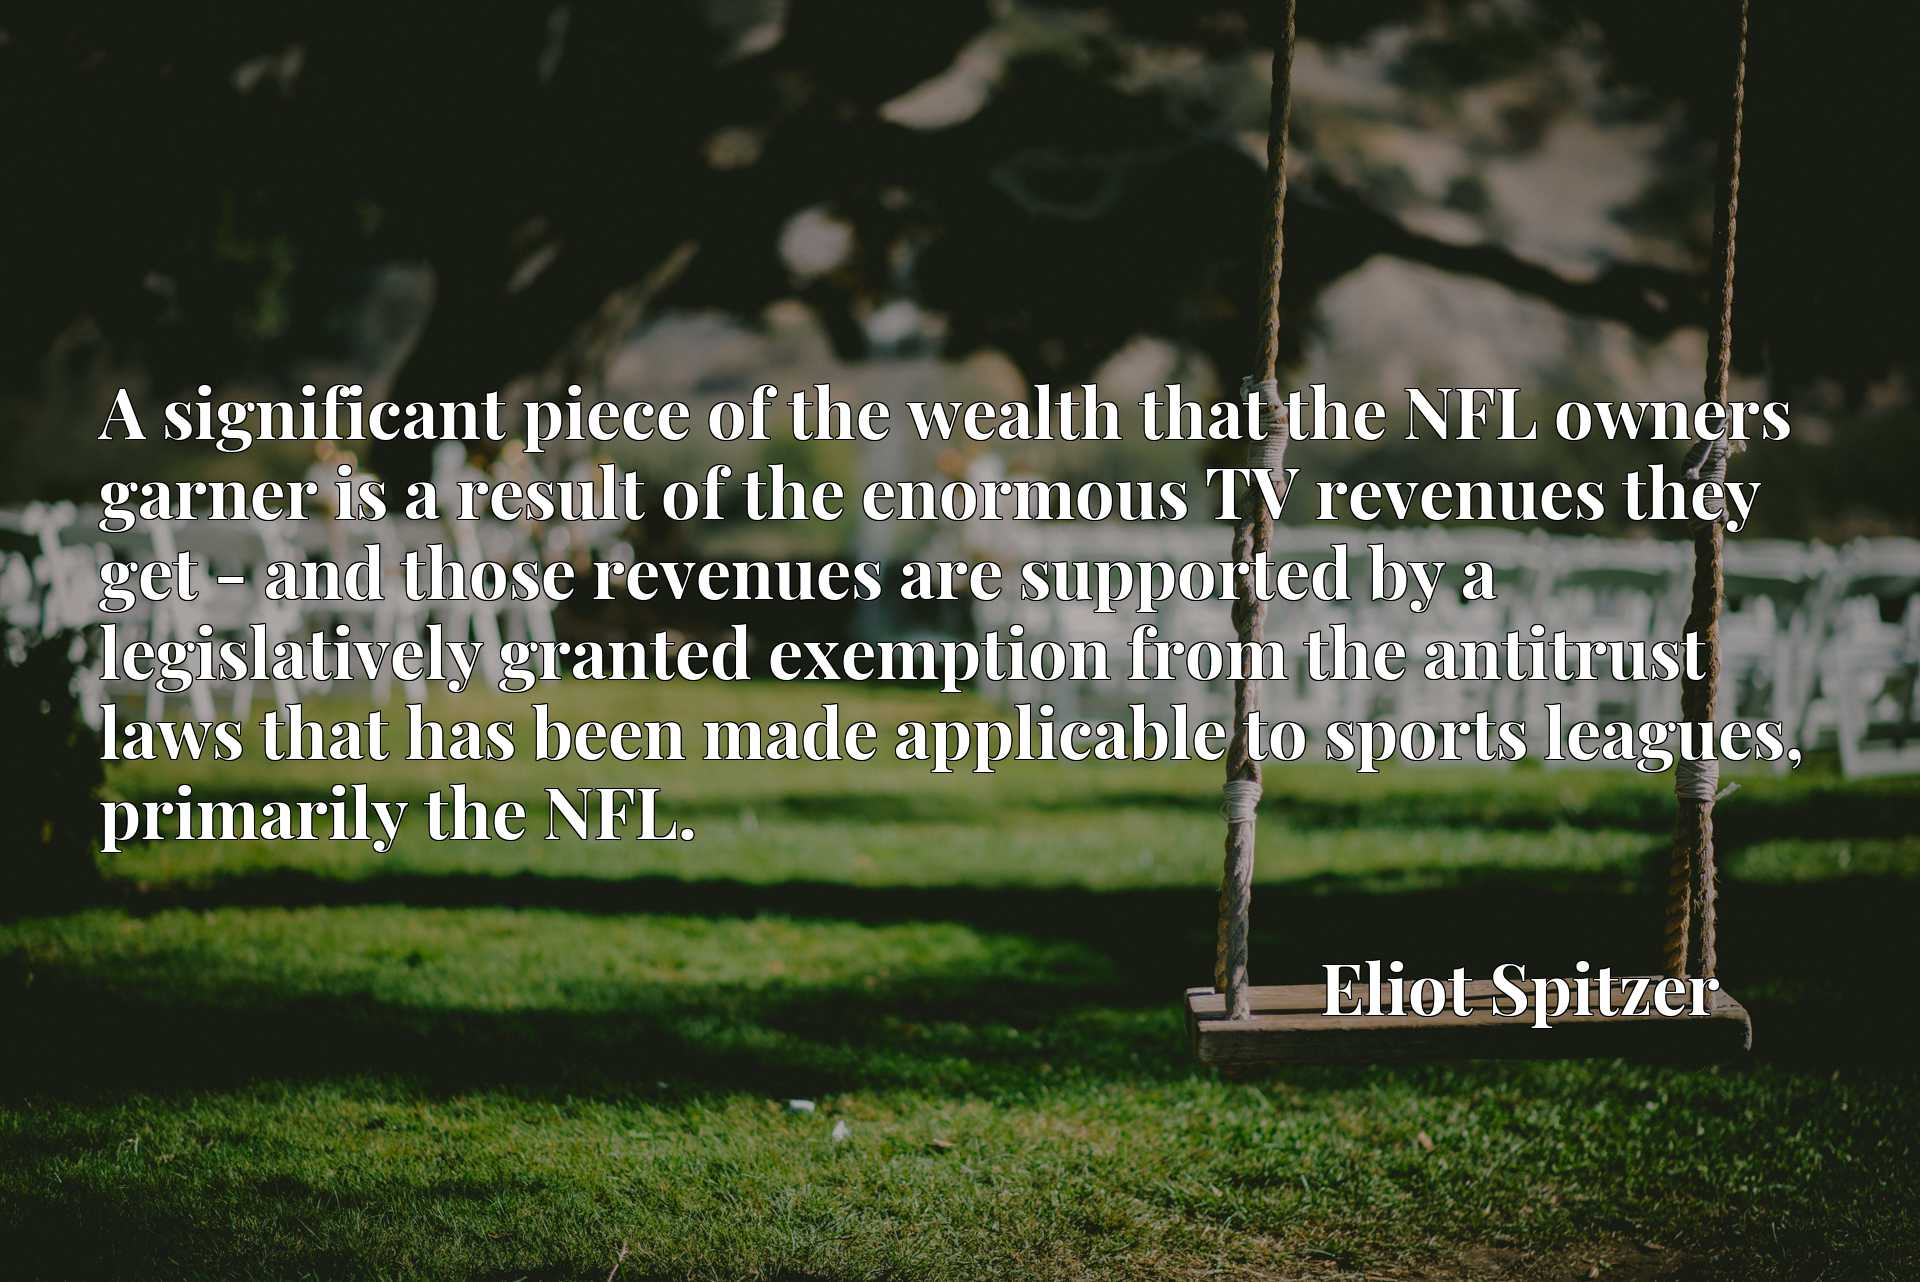 A significant piece of the wealth that the NFL owners garner is a result of the enormous TV revenues they get - and those revenues are supported by a legislatively granted exemption from the antitrust laws that has been made applicable to sports leagues, primarily the NFL.